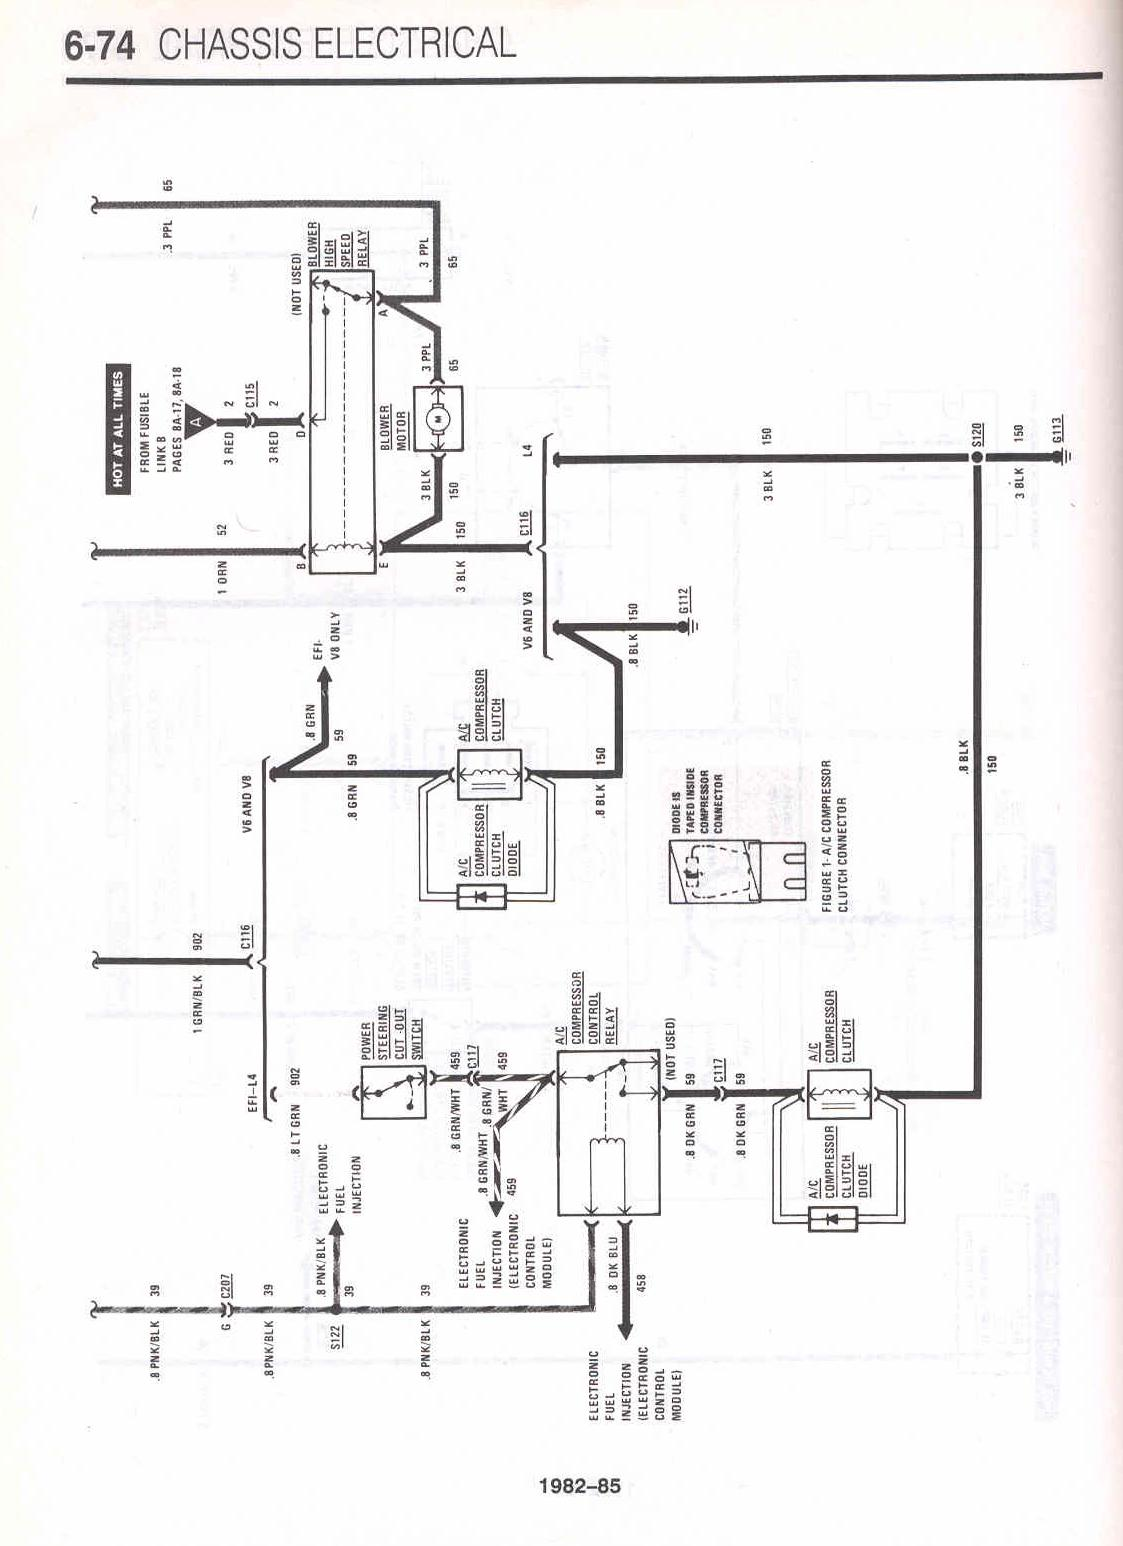 tags: #1982 corvette fuse panel diagram#81 corvette wiring diagram#76 corvette  wiring diagram#c3 corvette fuse diagram#77 corvette wiring diagram#1973